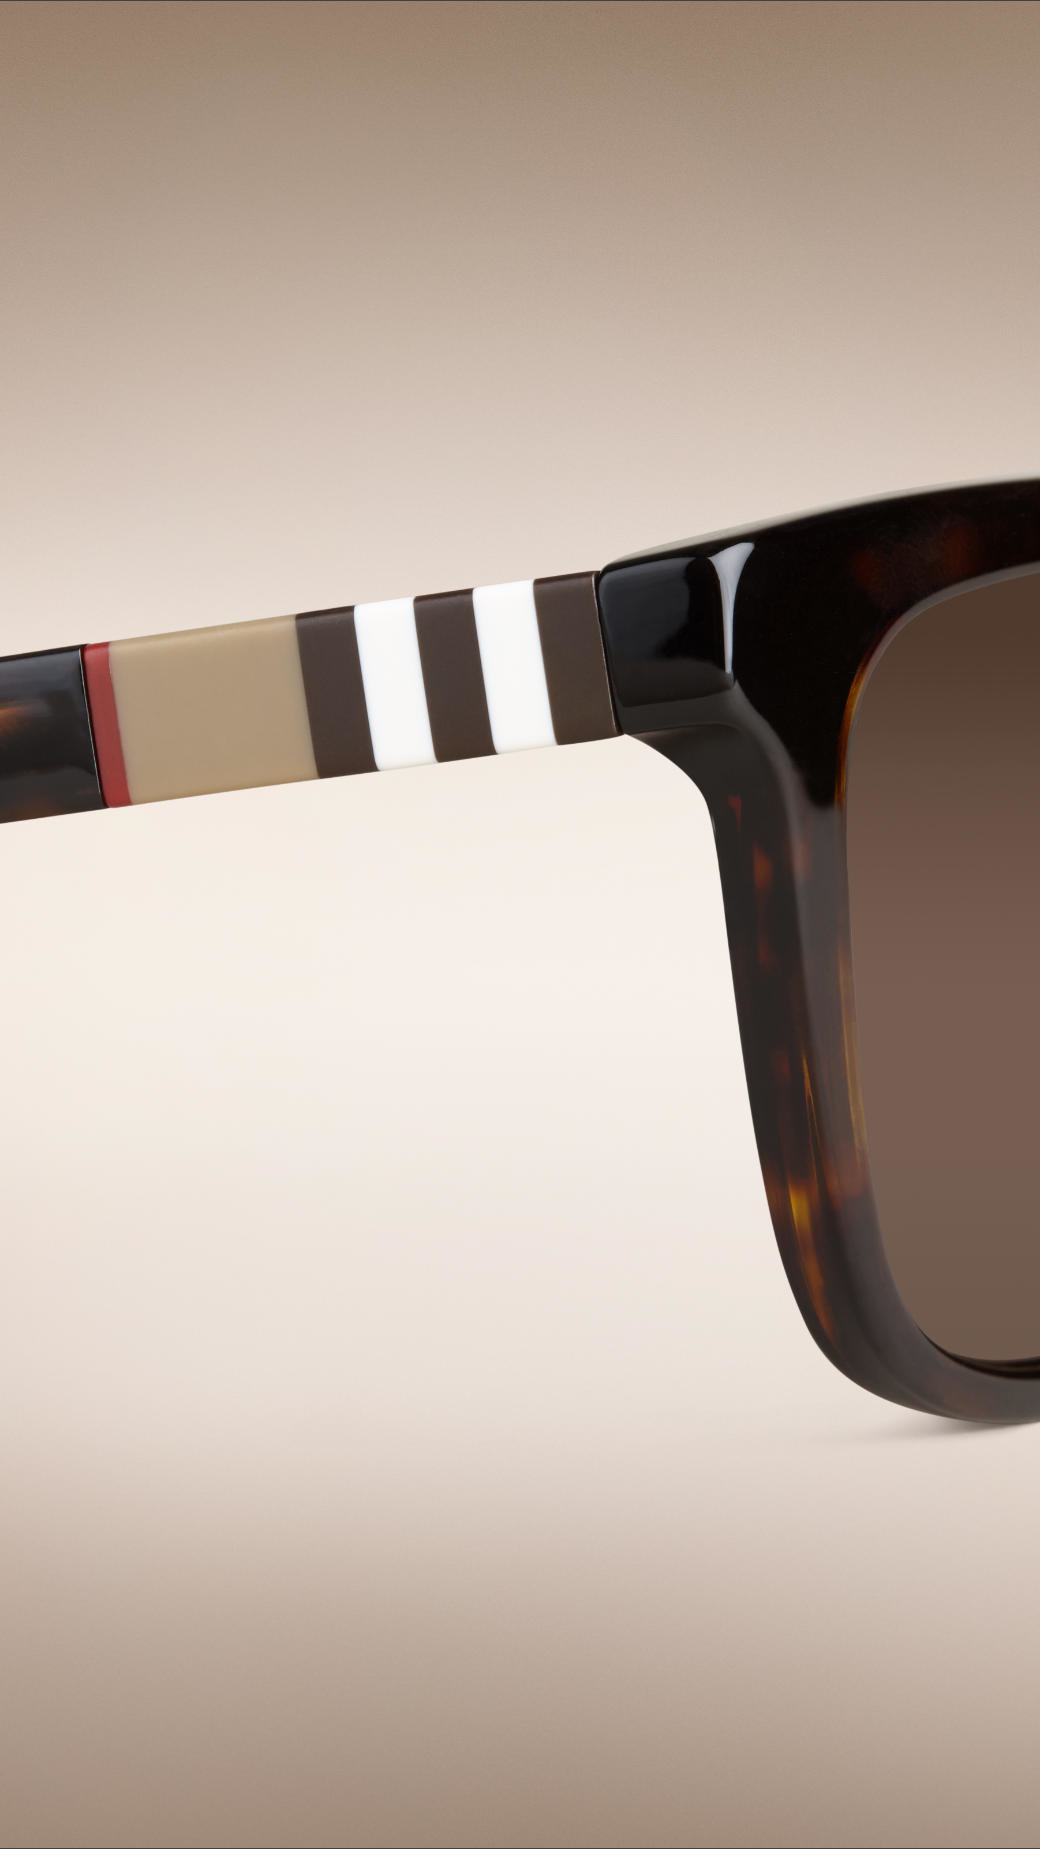 1883eac9c784 Burberry Square Frame Check Detail Sunglasses Brown in Black for Men ...